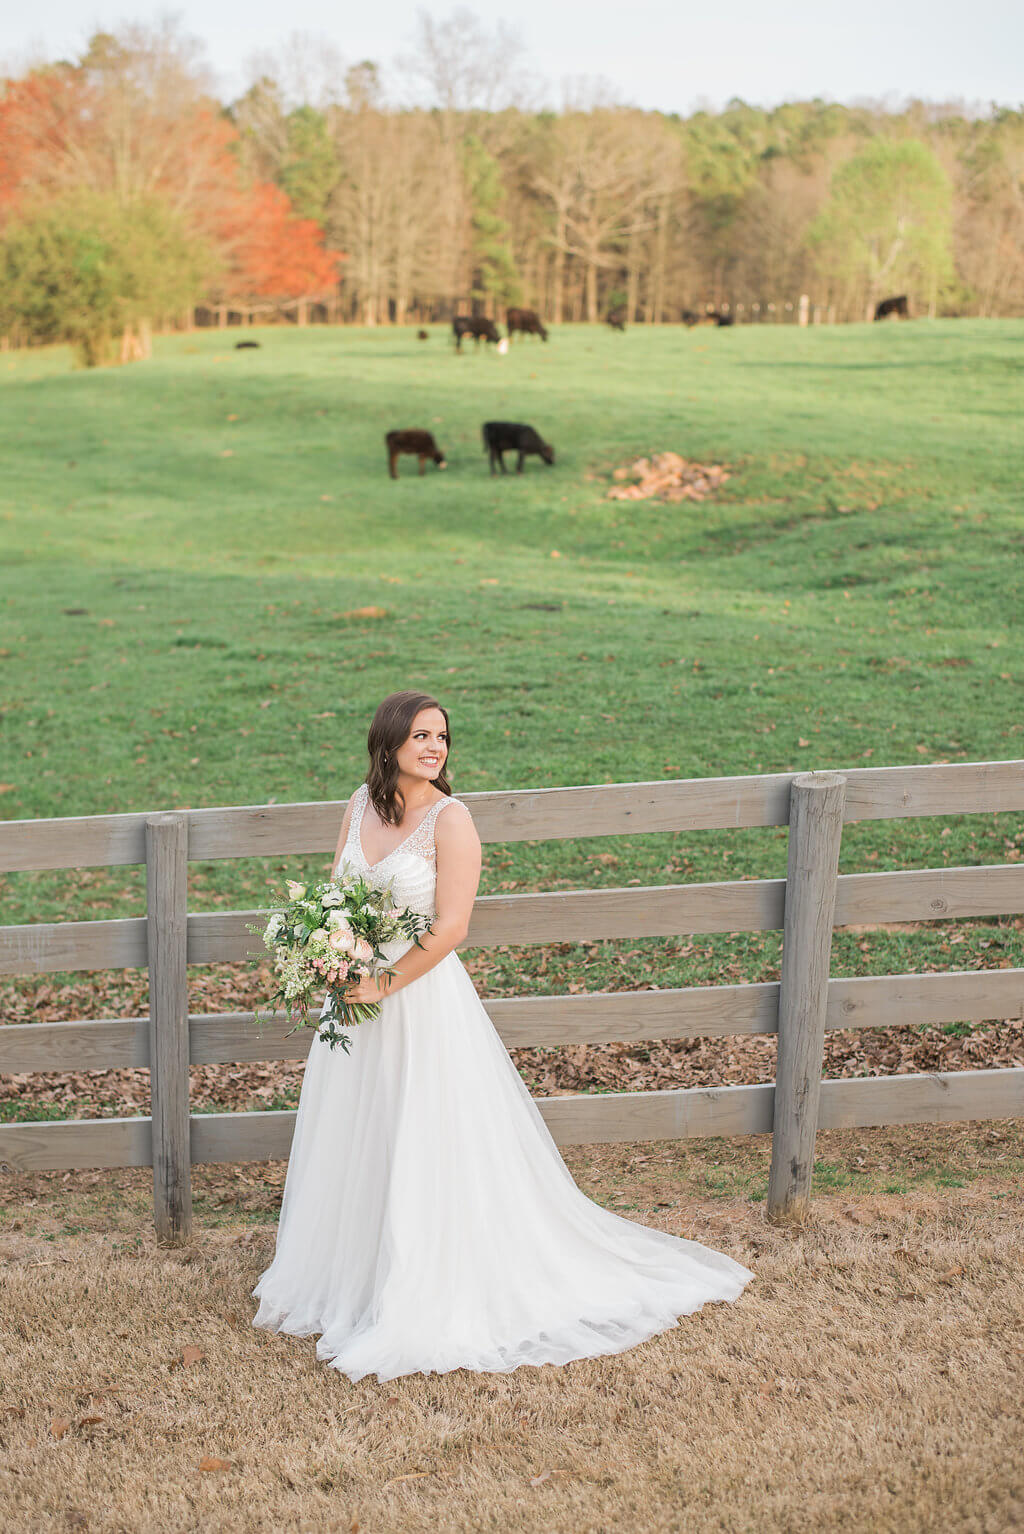 Classic Southern Wedding Inspiration // The Wright Farm Wedding Styled Shoot // West Georgia Certified Wedding Planner